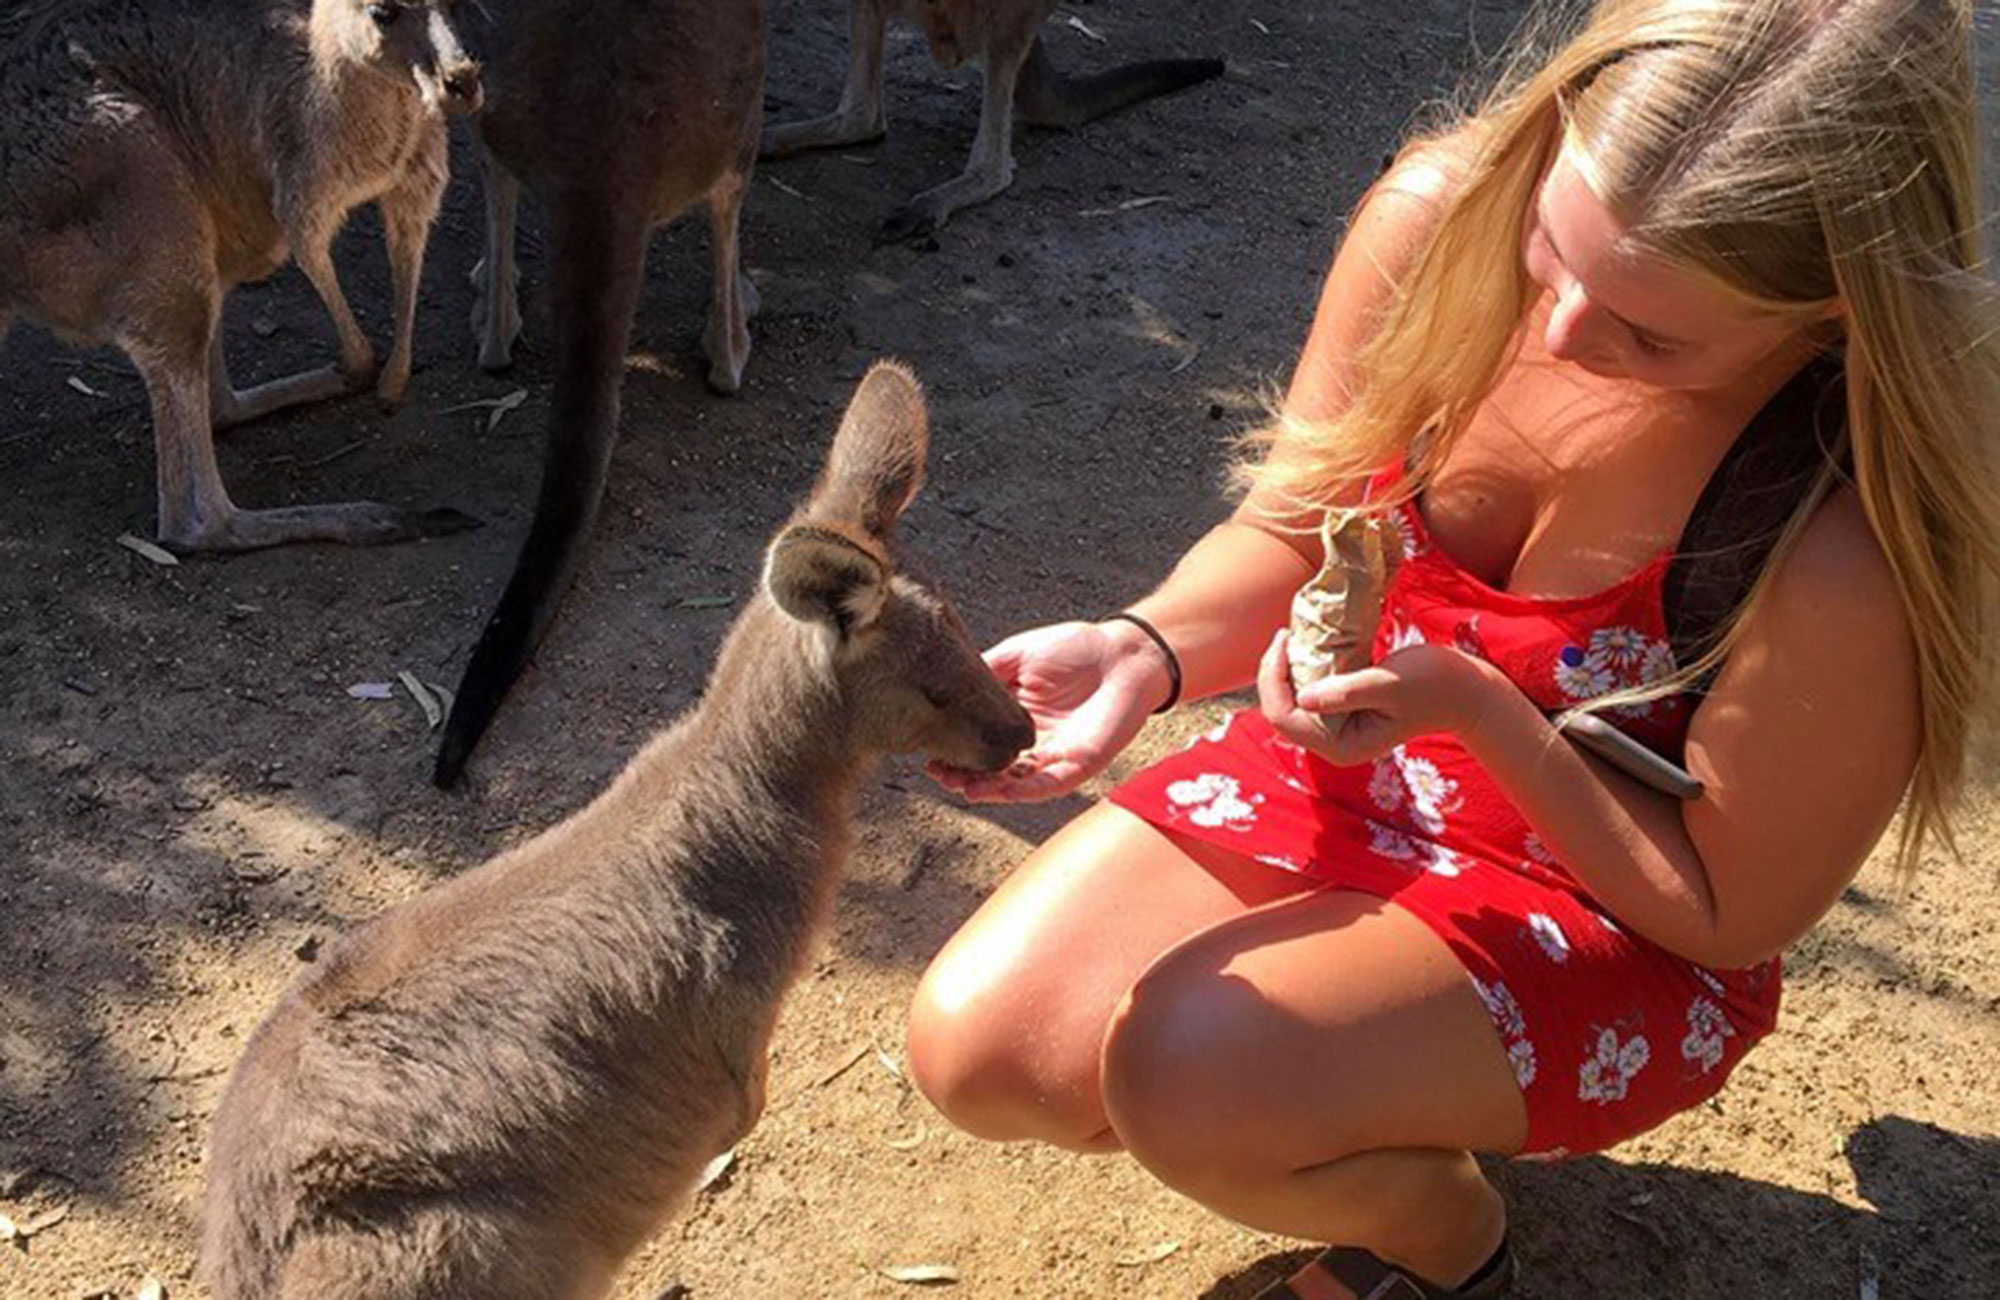 johanne student at university of south australia feeding kangaroos